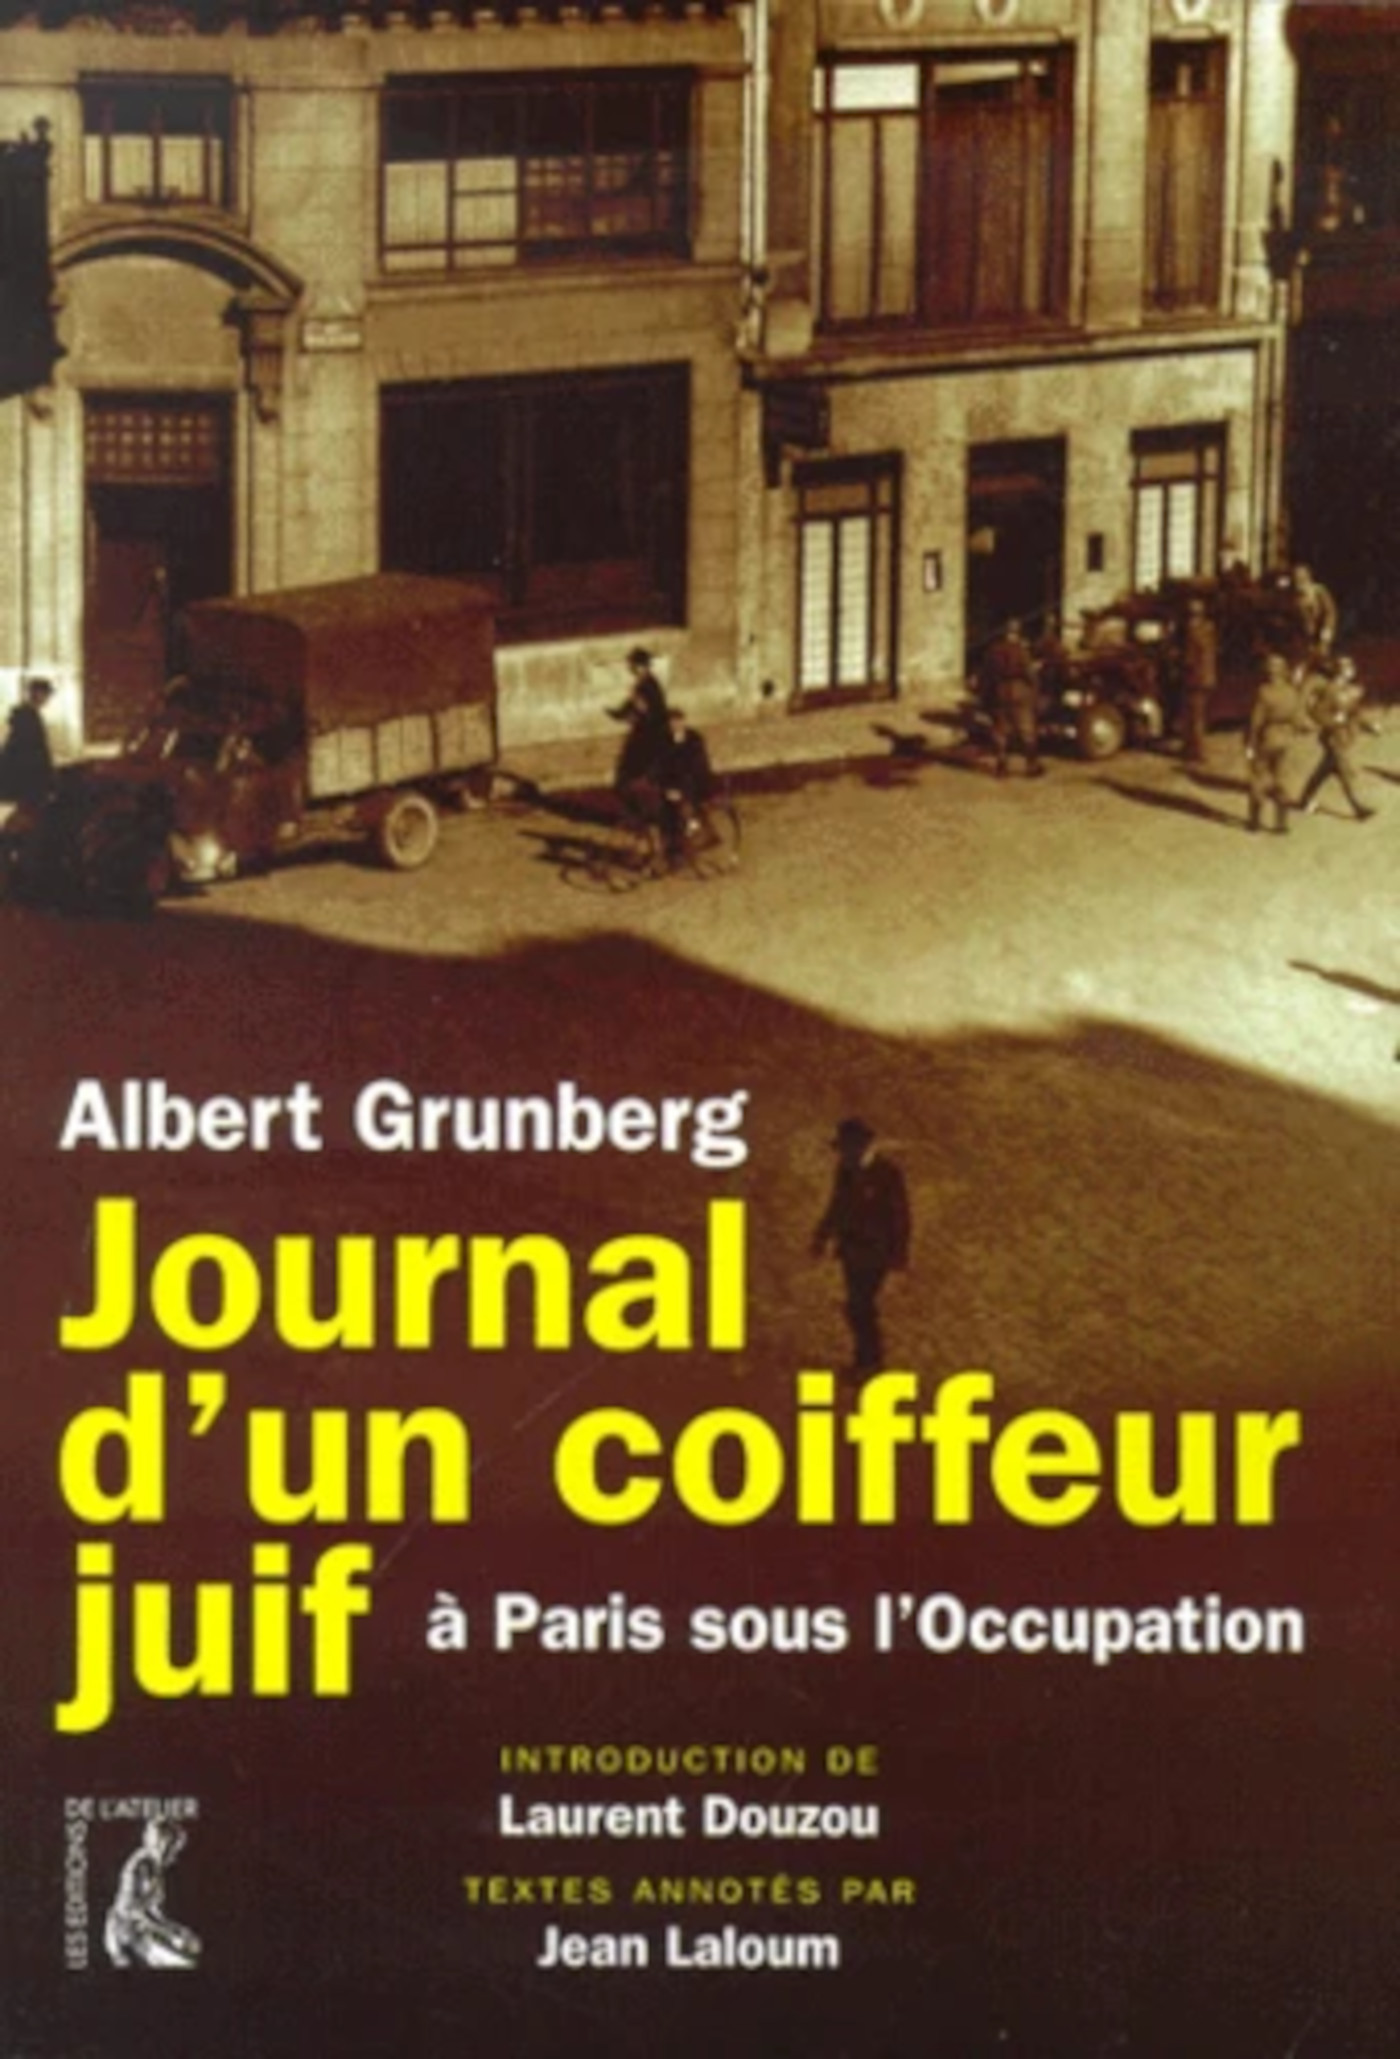 JOURNAL D'UN COIFFEUR JUIF A PARIS SOUS L'OCCUPATION